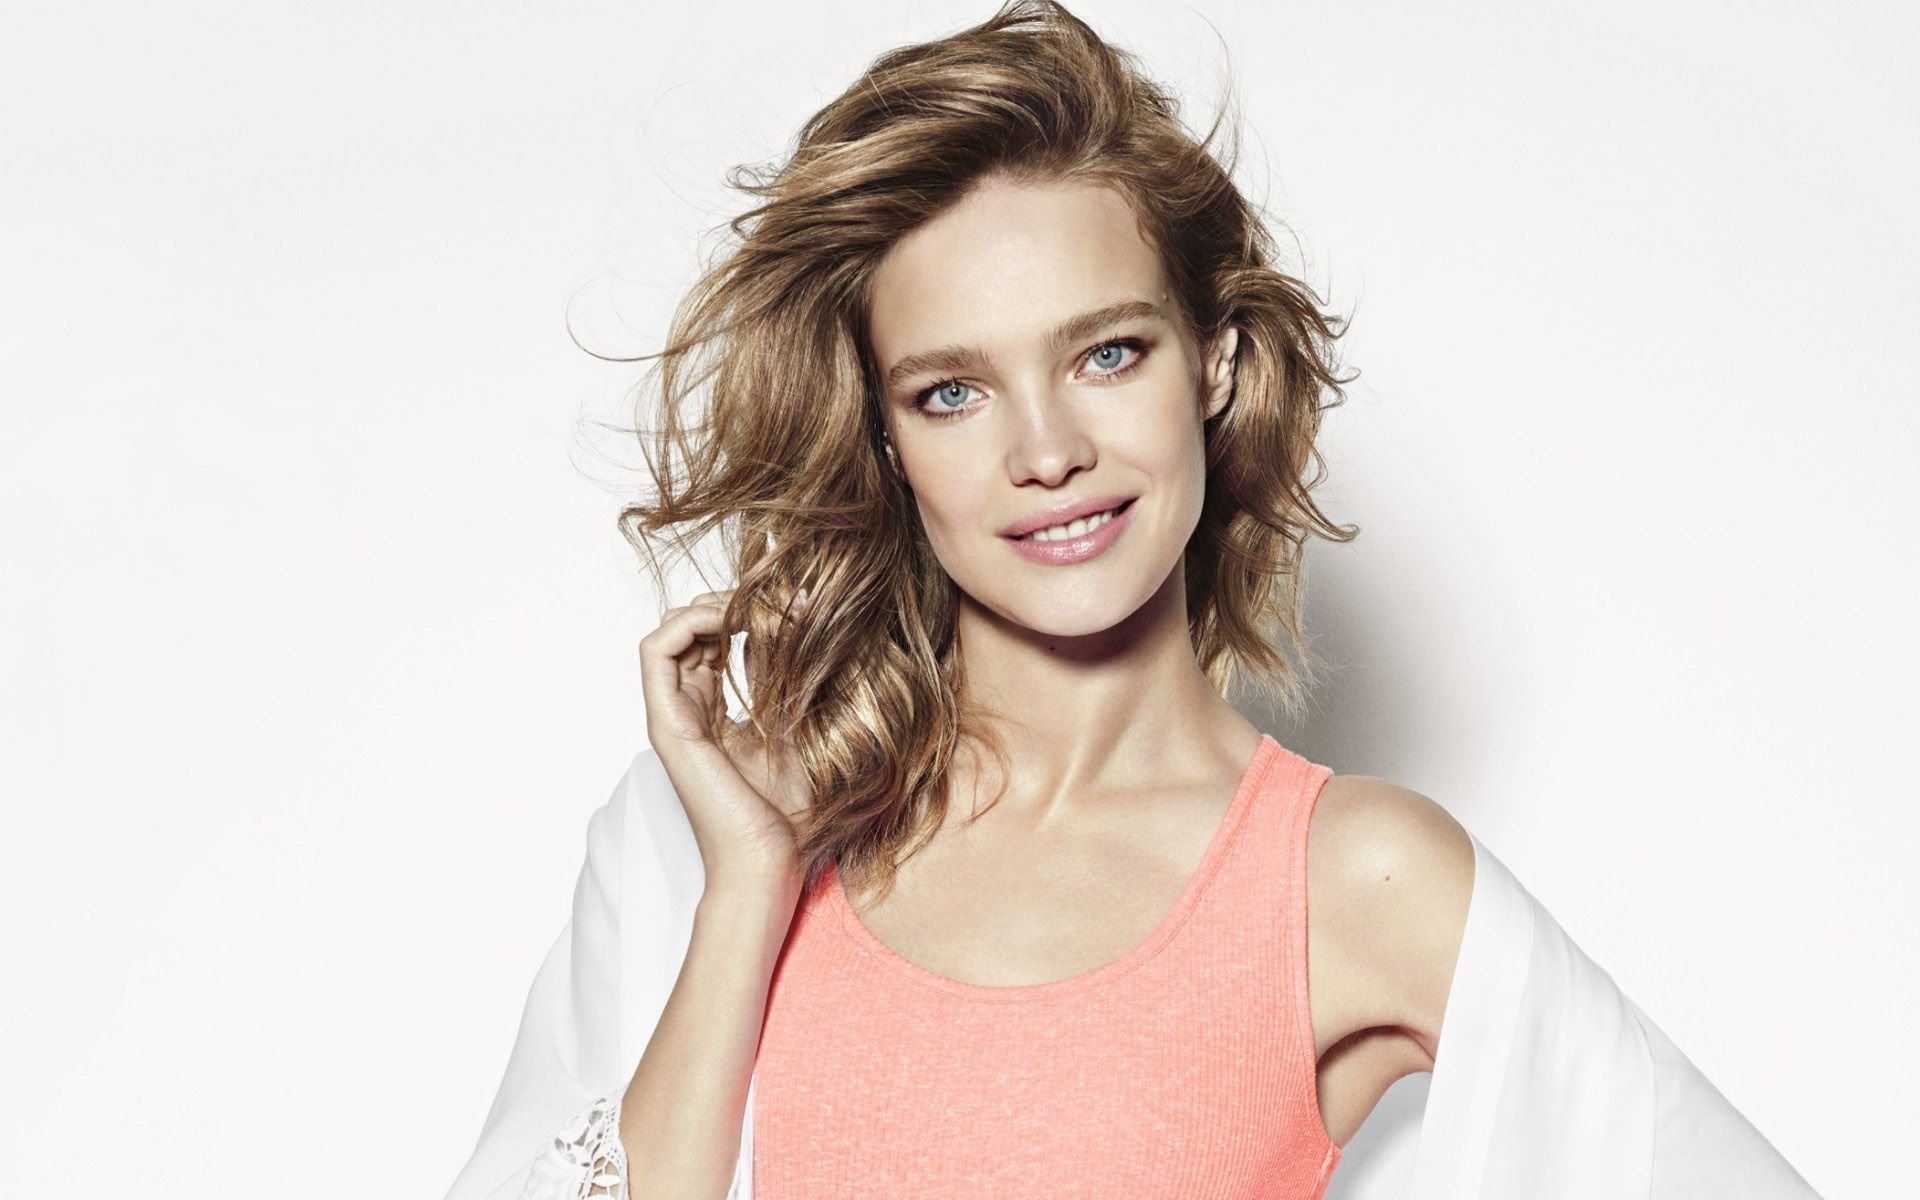 natalia vodianova smile wallpaper 61140